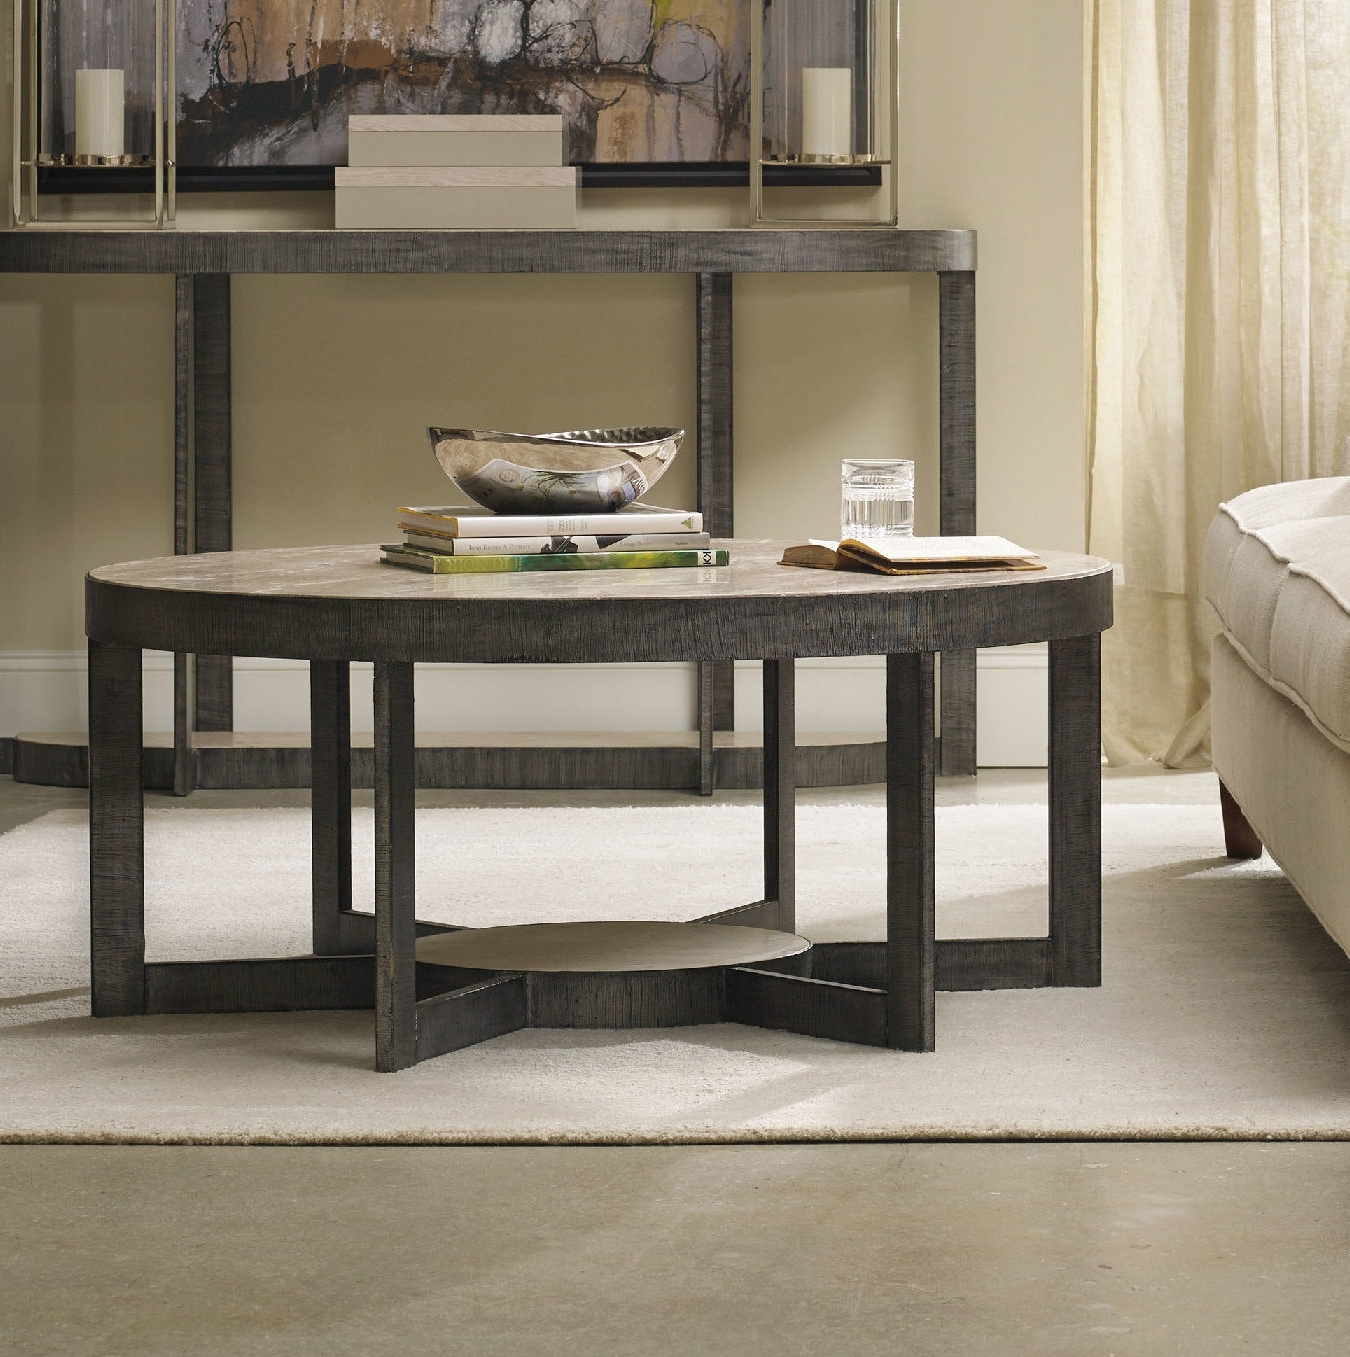 Widely Used Mill Coffee Tables With Hooker Furniture Mill Valley Coffee Table (View 20 of 20)